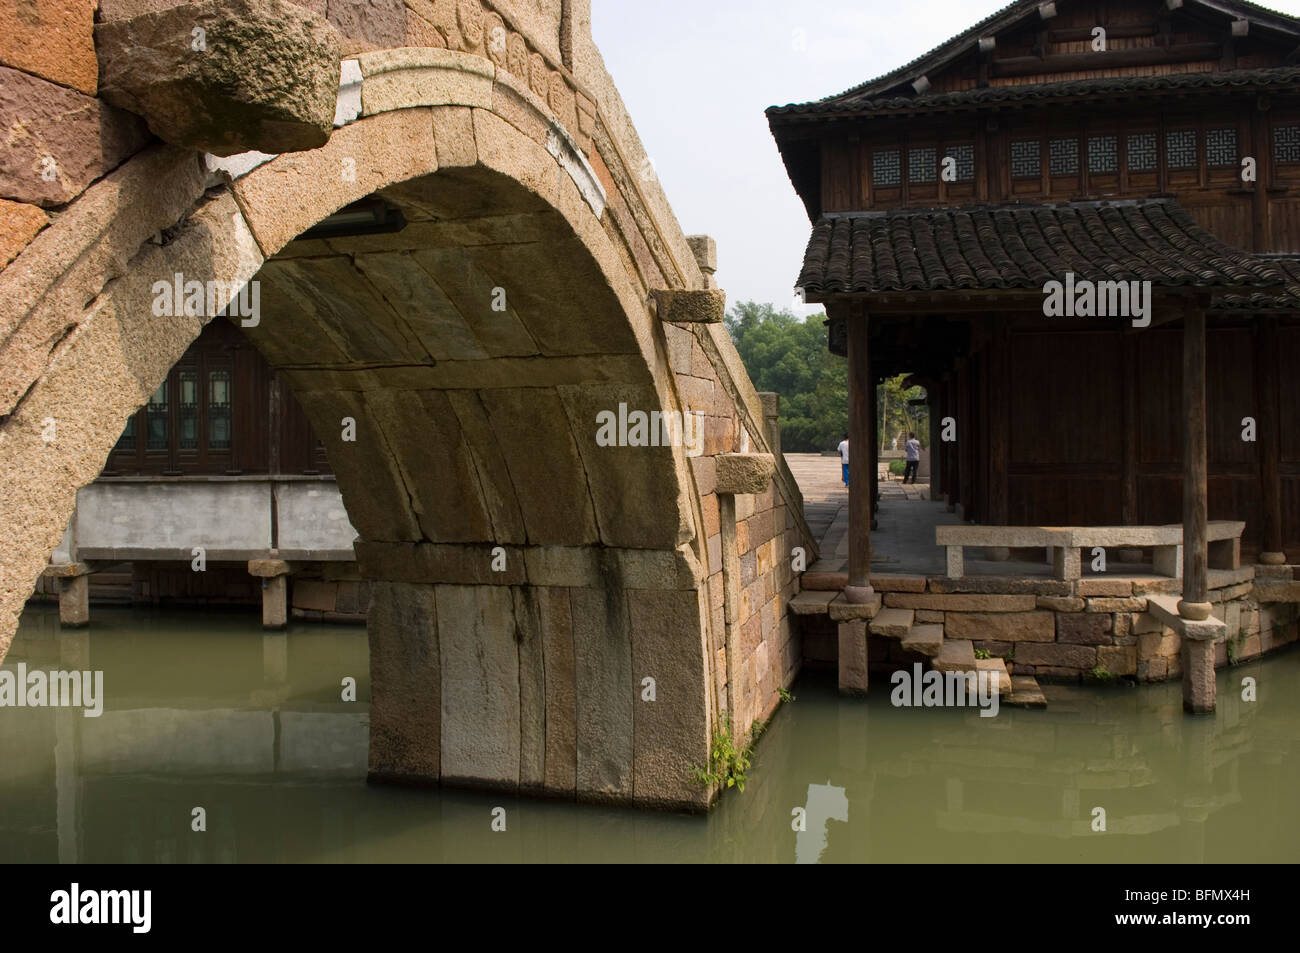 Arched bridge in the water town Wuzhen.  Zhejiang province, China. - Stock Image